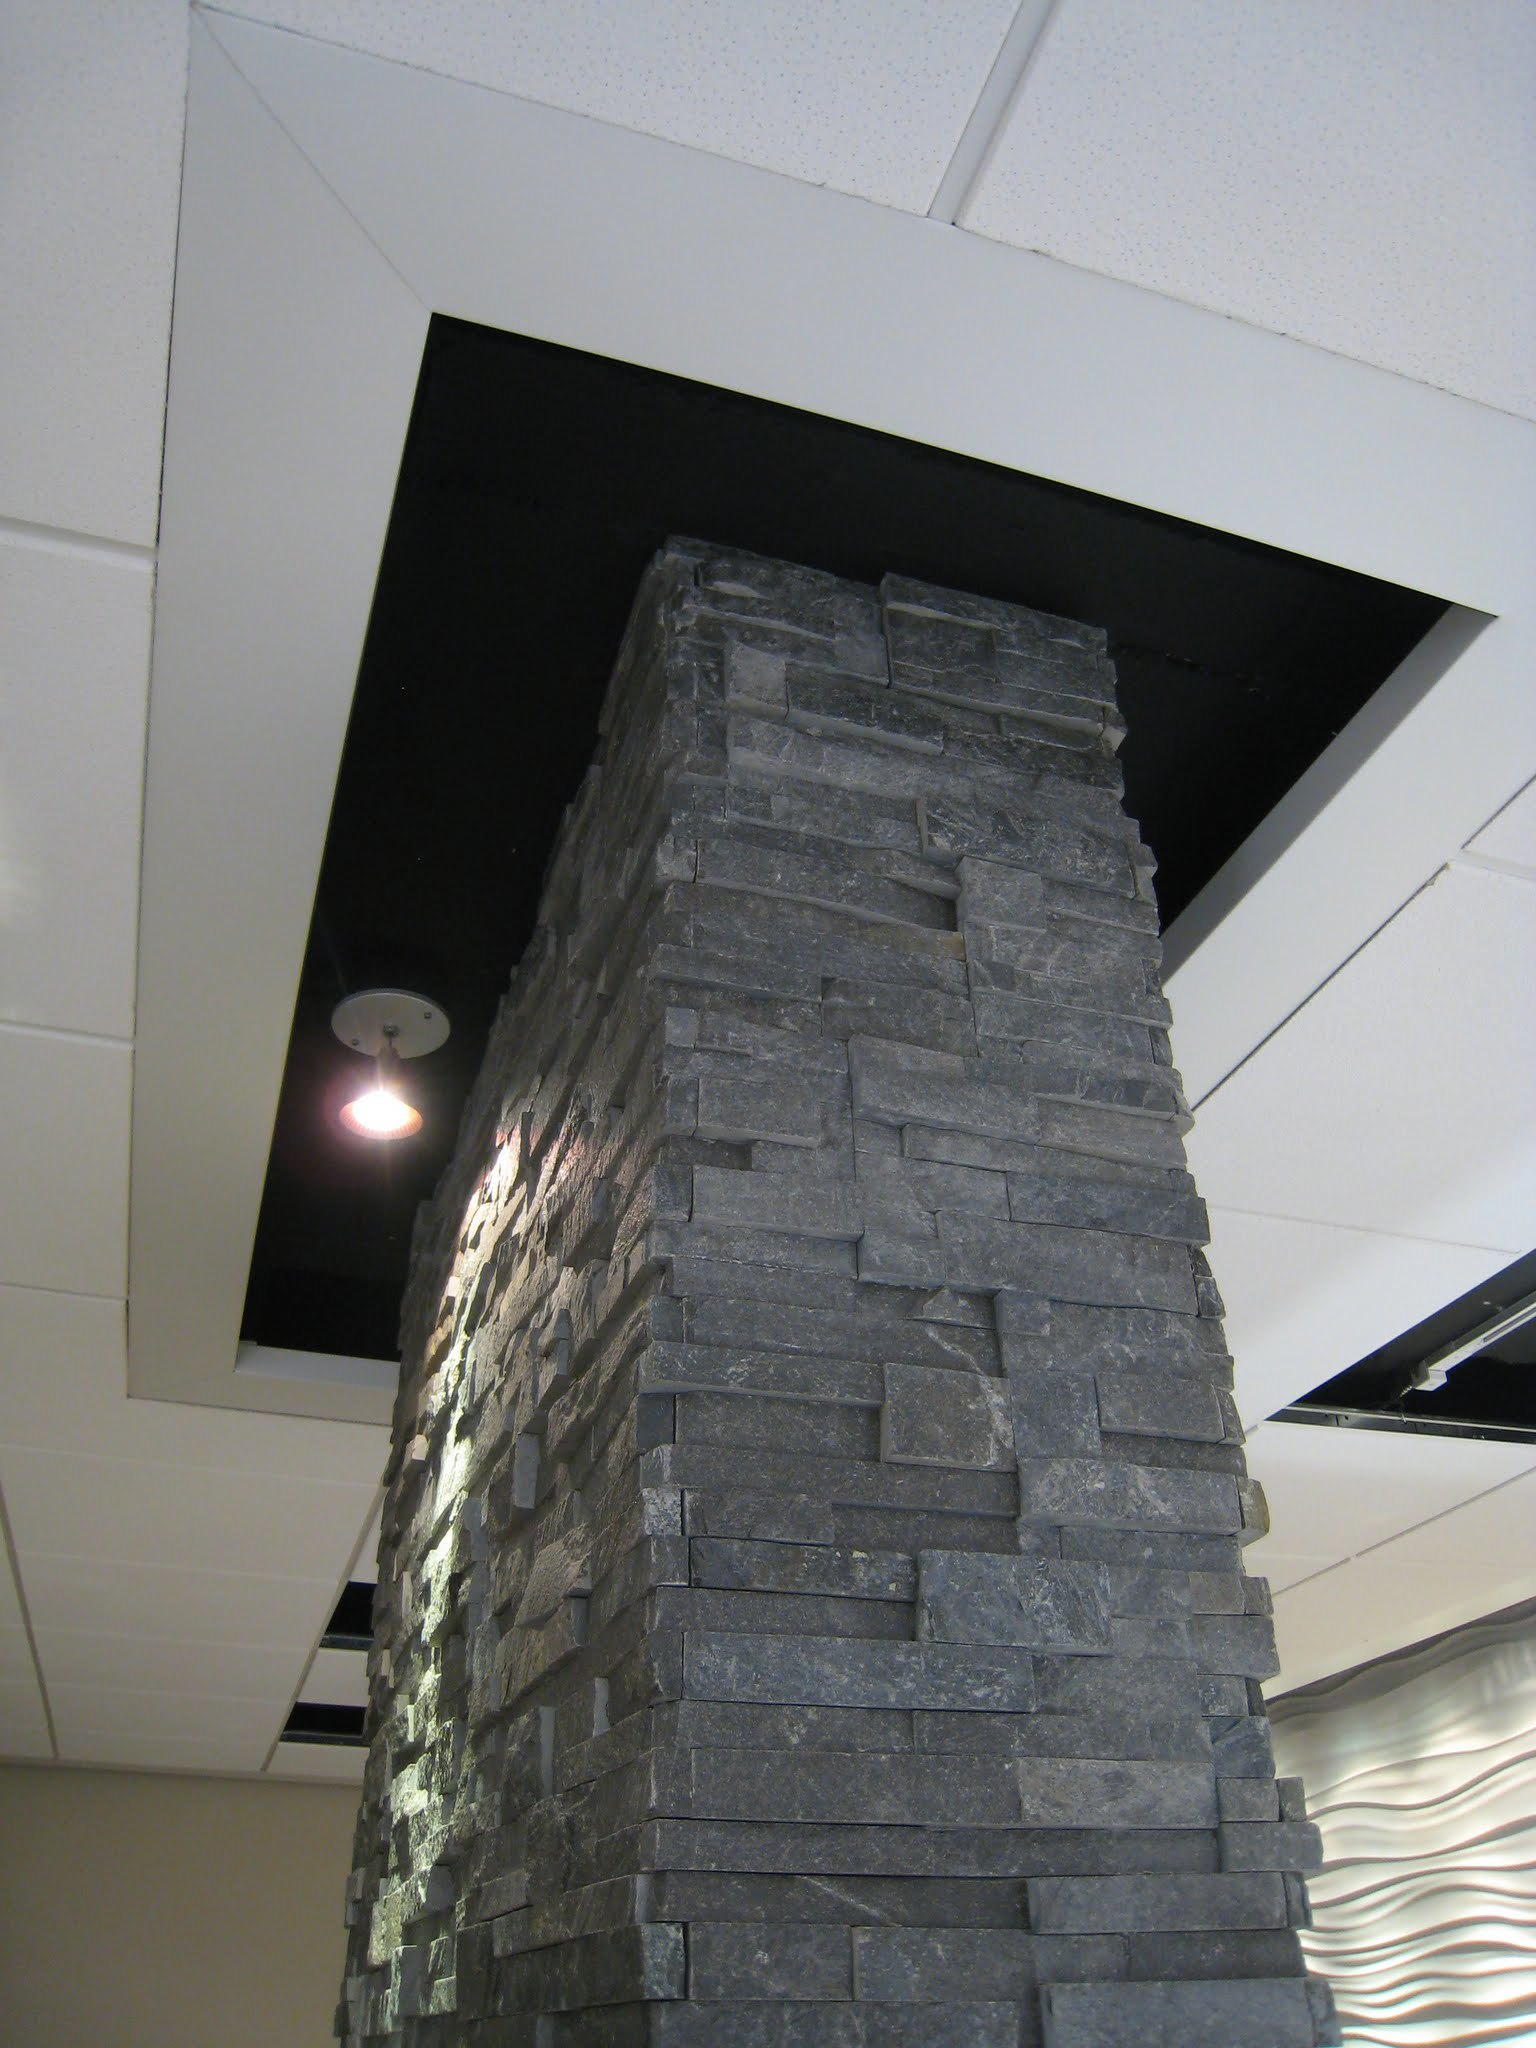 kodner jeweler stone column ceiling termination.jpg